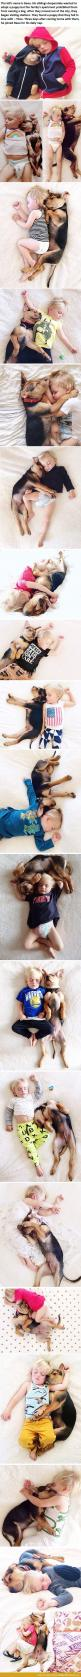 This is the cutest thing to ever happen: Cuteness Overload, Dogs, Sweet, Pet, Puppys, Baby, Friend, Kid